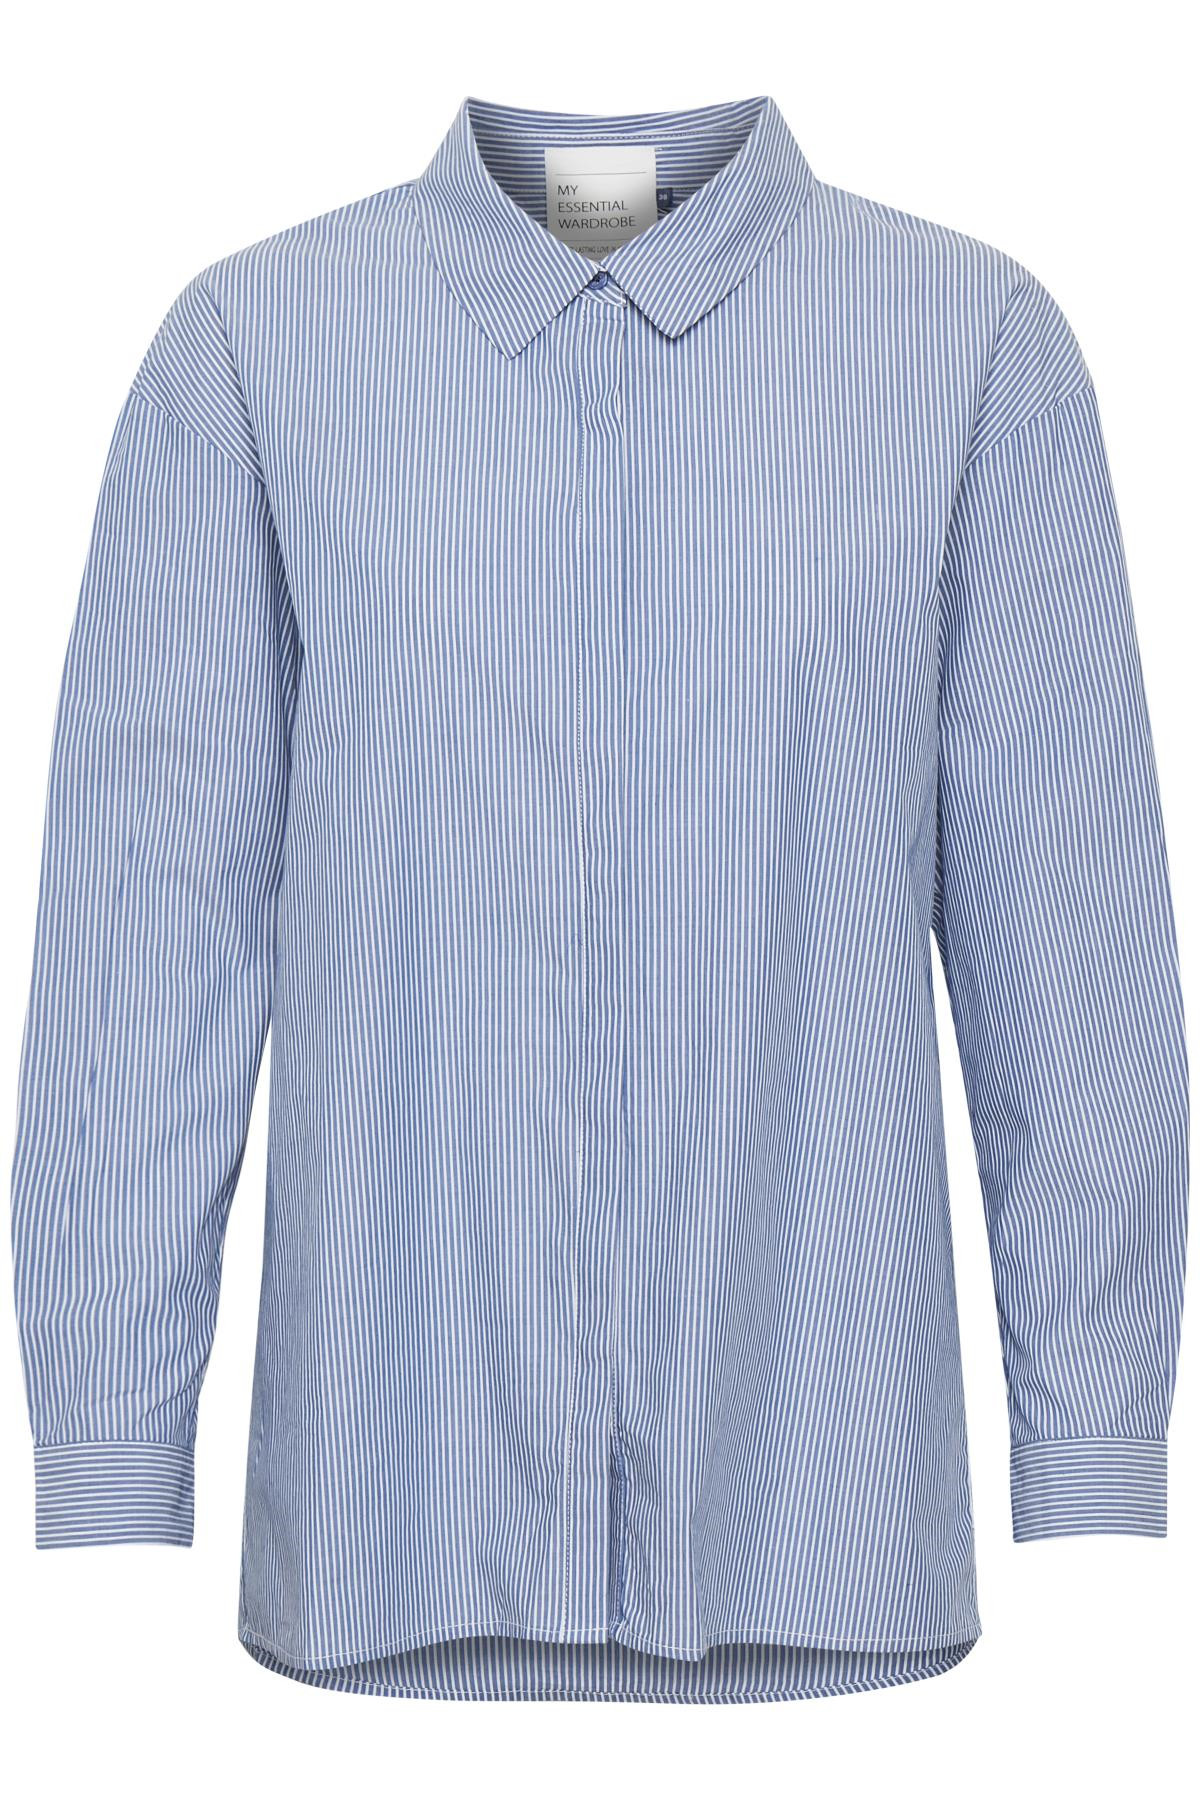 Image of   Denim Hunter 03 THE SHIRT 10702539 S (Striped Medium Blue 38076, 44)